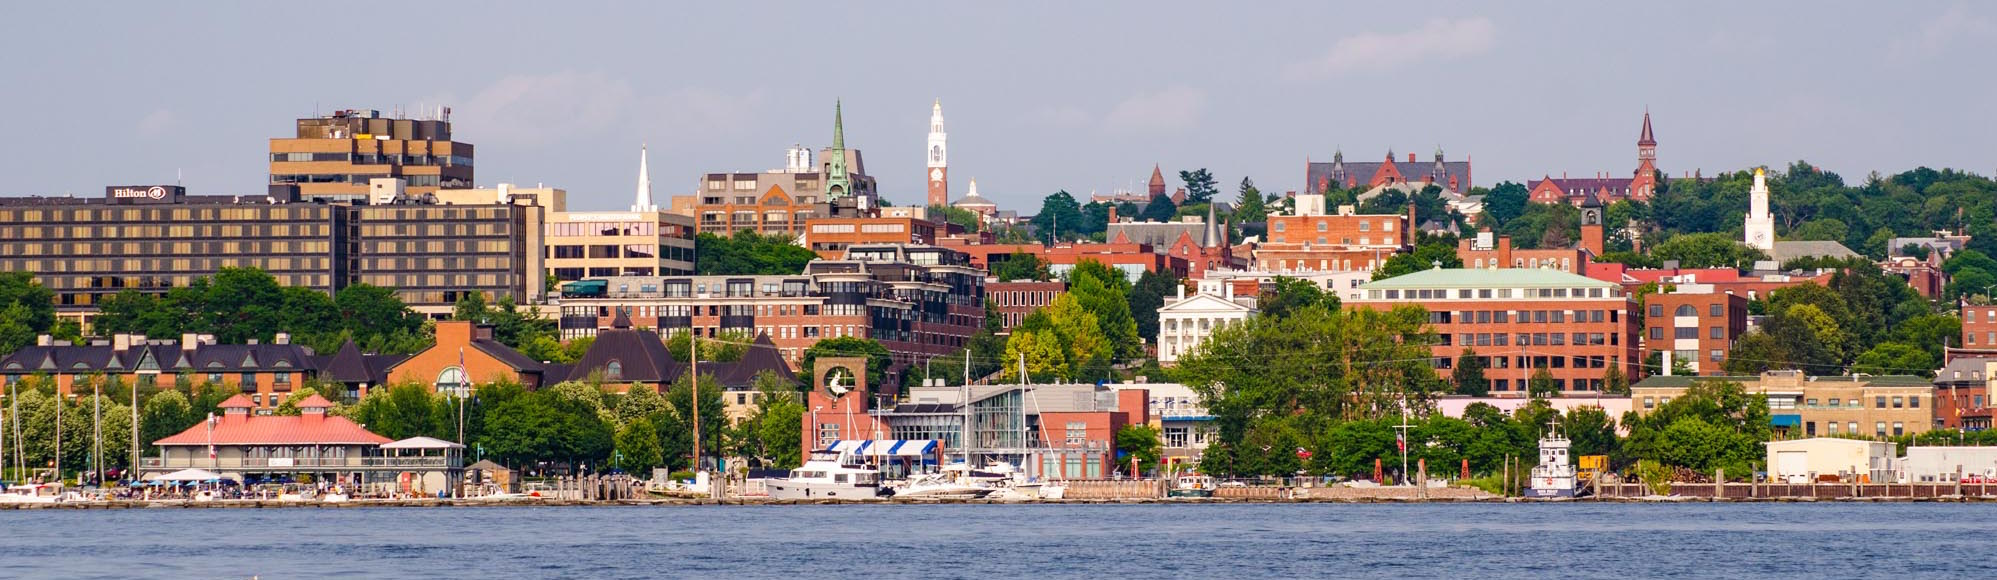 Burlington waterfront from boat on Lake Champlain